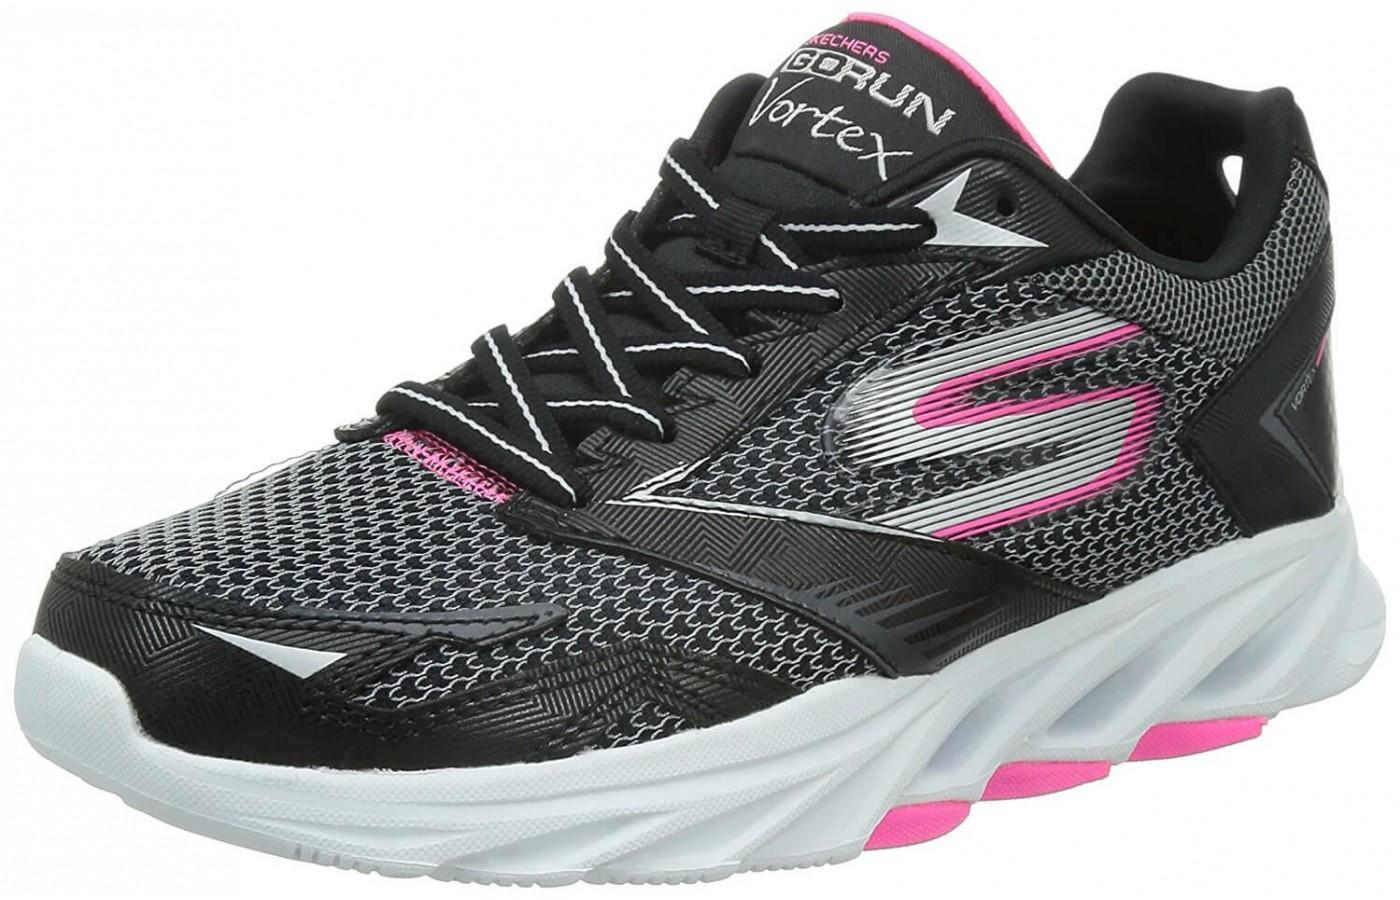 33d15e8a Skechers GoRun Vortex has a fairly chunky looking midsole ...